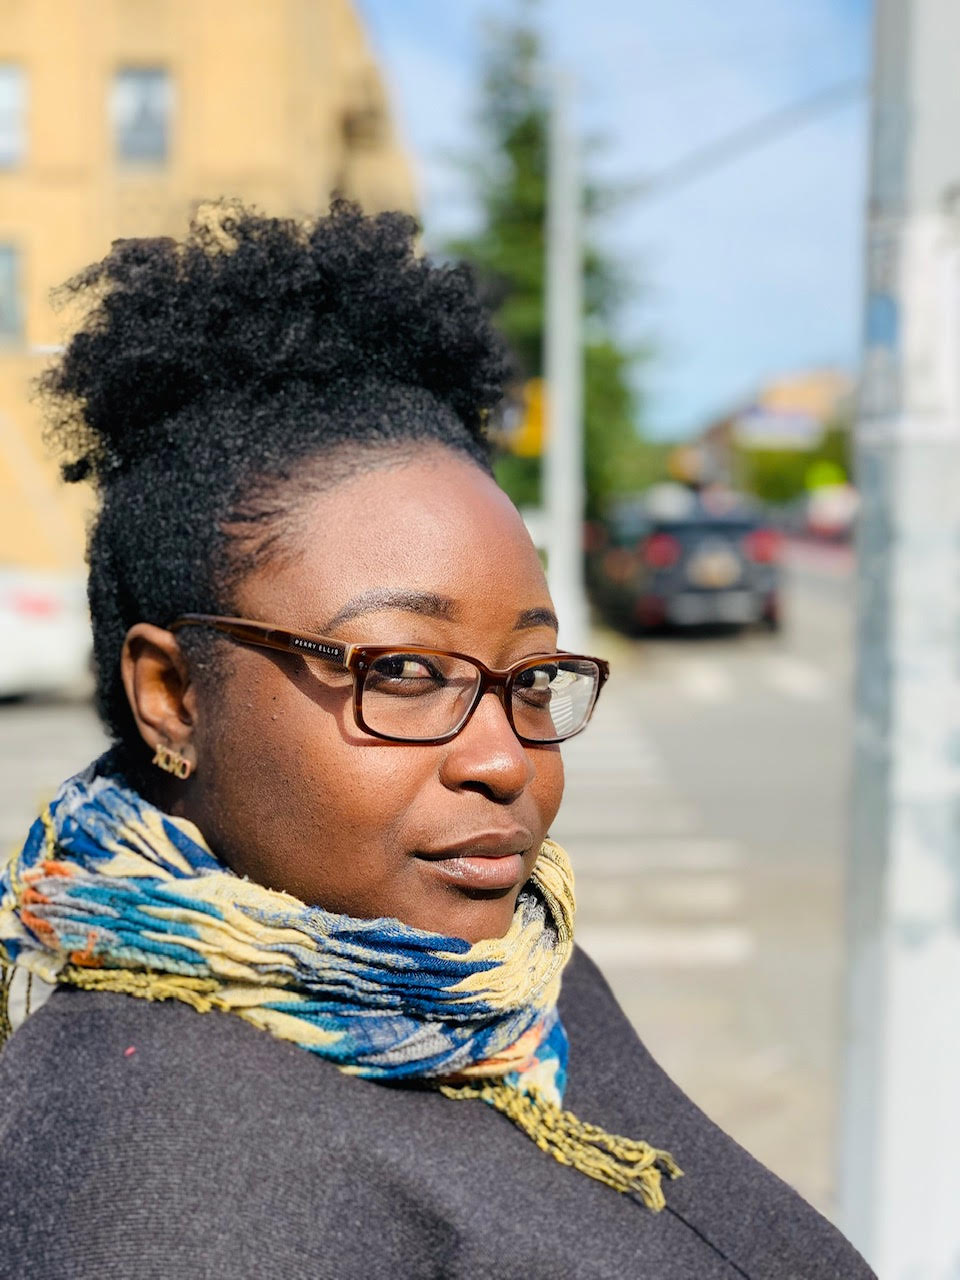 Antonya Jeffrey - New York State Deputy Director, Fines and Fees Justice Center